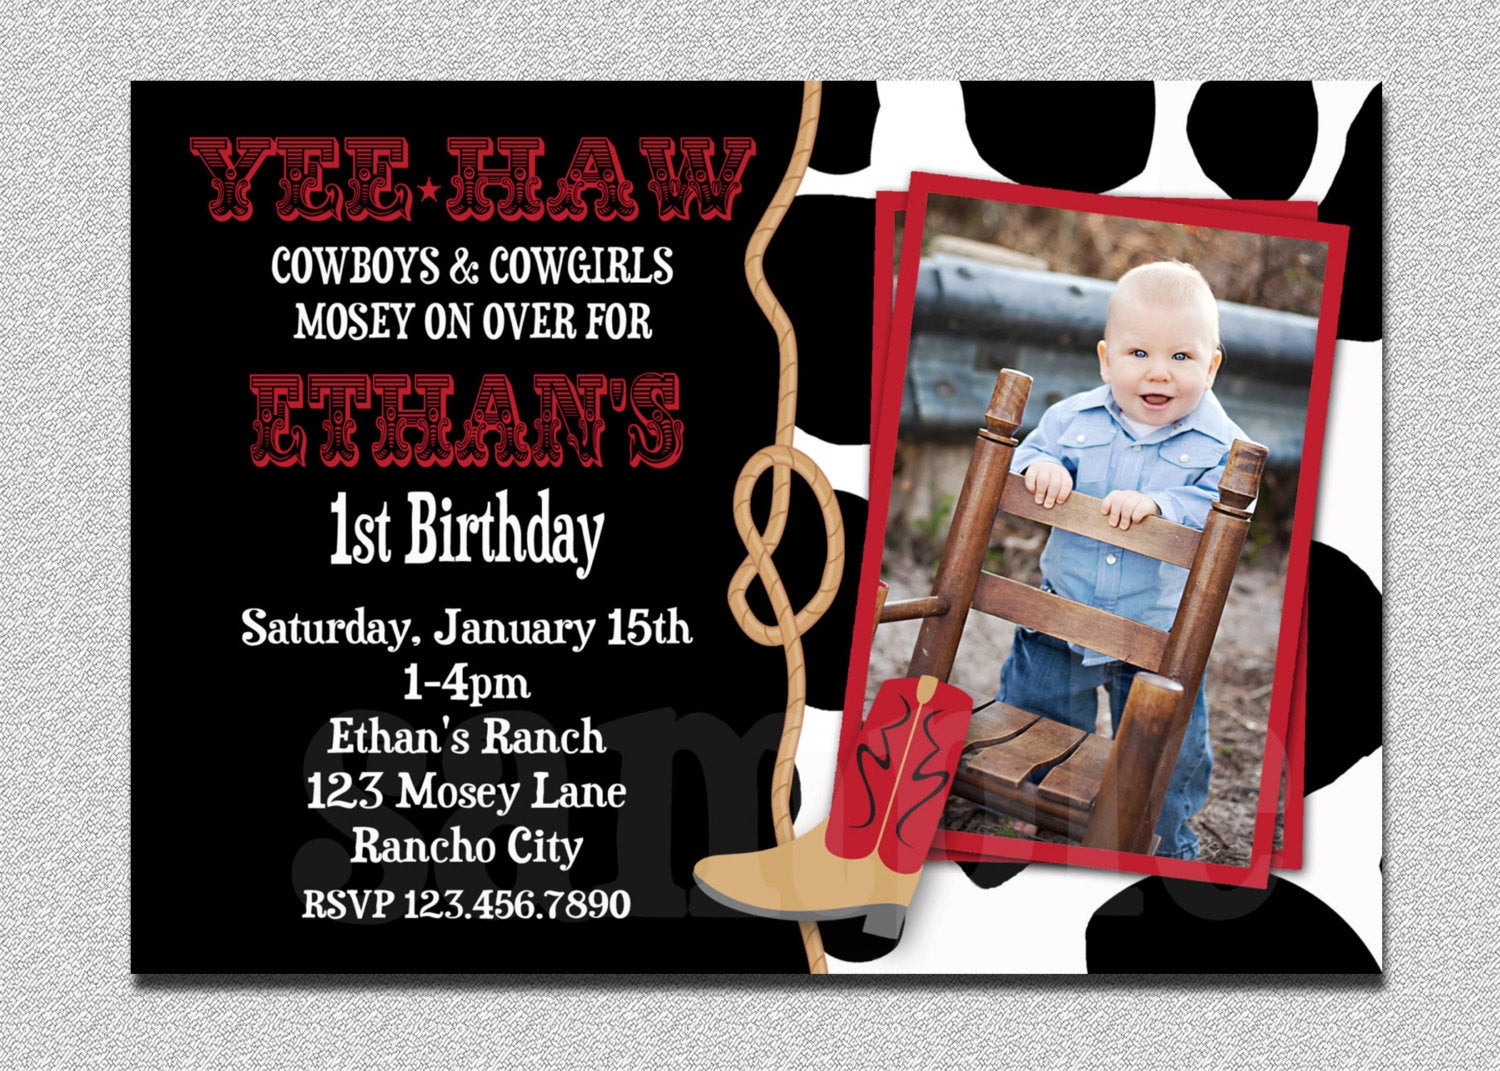 Best ideas about Cowboy Birthday Invitations . Save or Pin Cowboy Birthday Invitation Cowboy 1st Birthday Party Now.